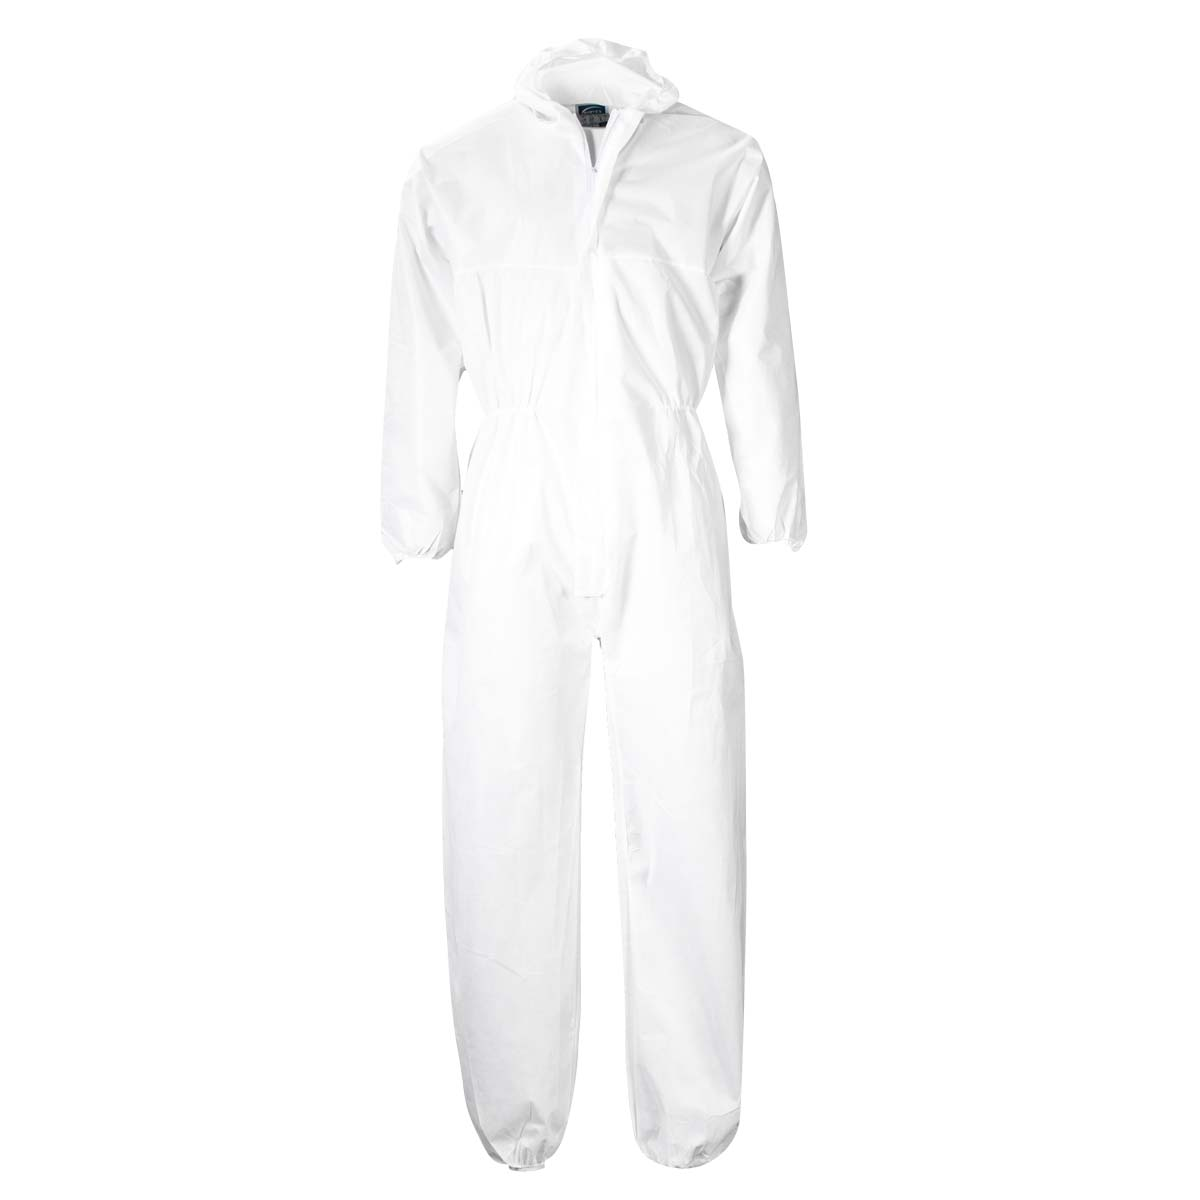 Coverall PP 40g - ST11WHR